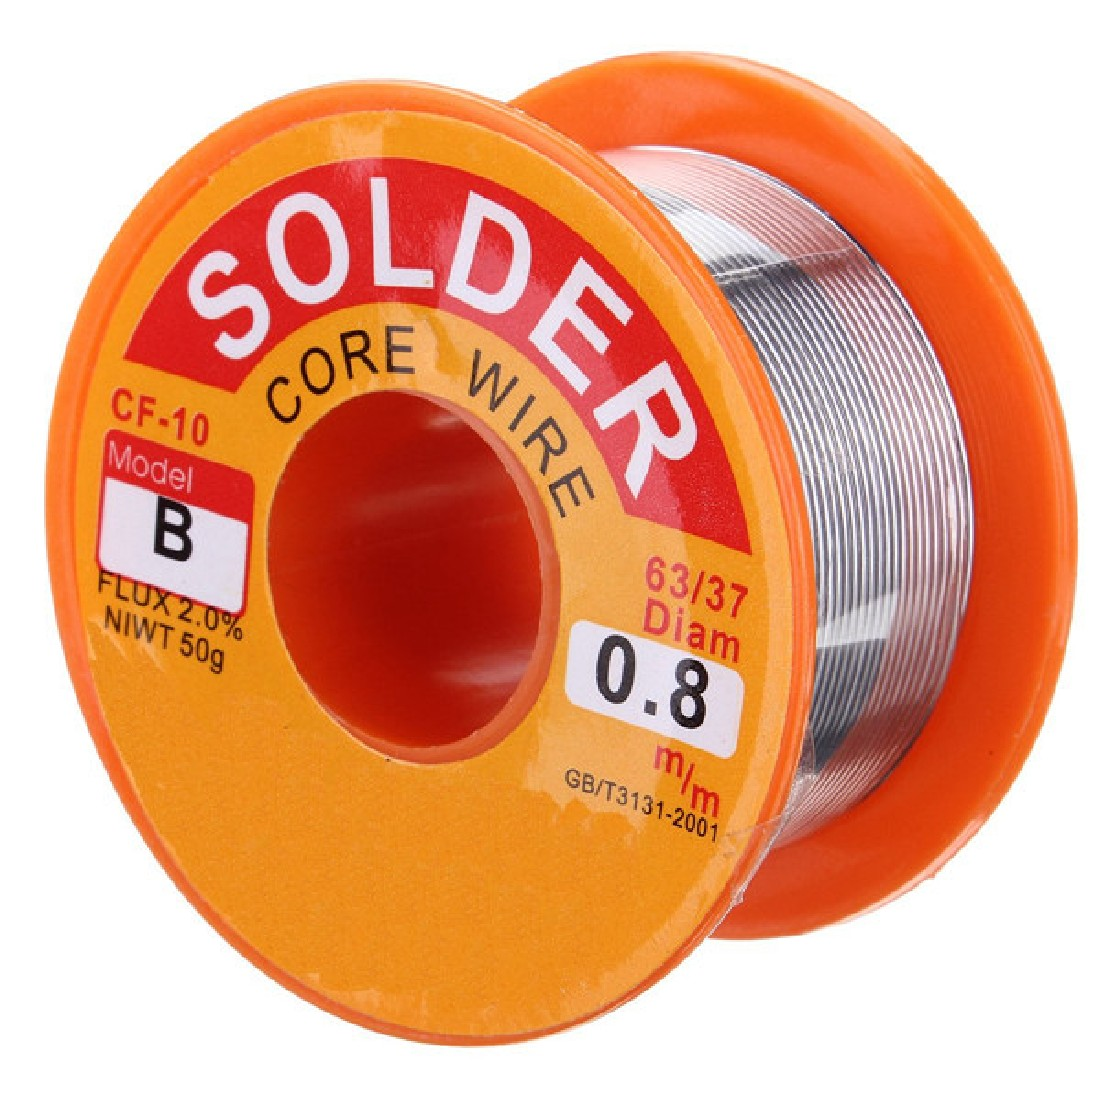 Diam 0.8mm 63/37 Solder Wire Clean Rosin Core Welding Tin Lead Flux Soldering Iron Wire Reel Soldering Tools